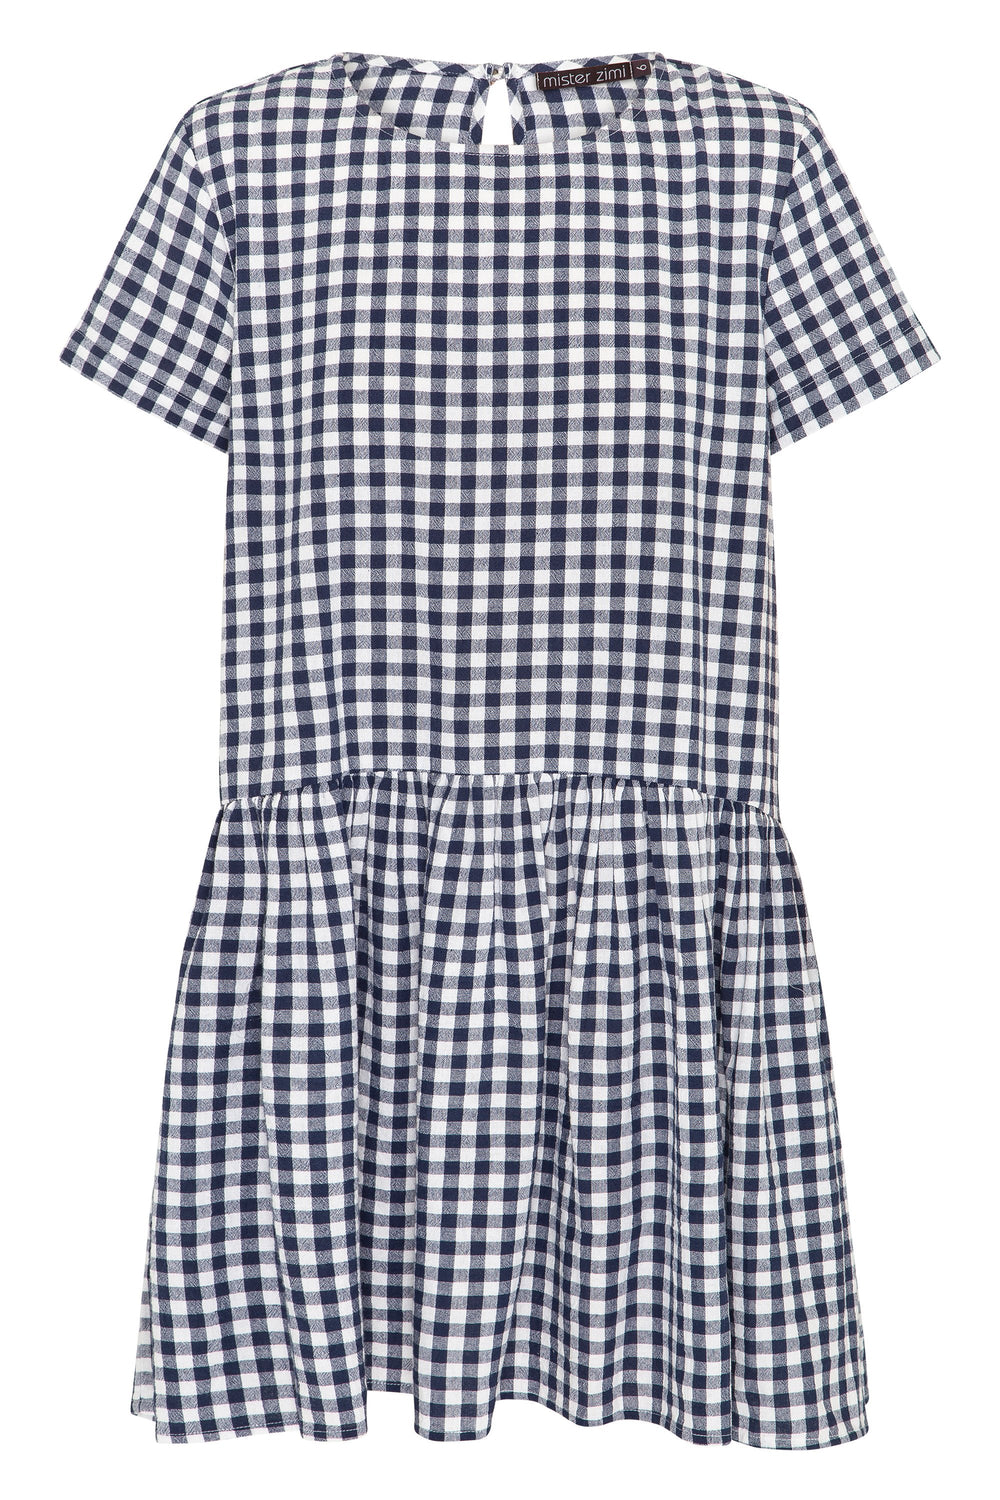 Summer Elsa Dress In Navy Gingham